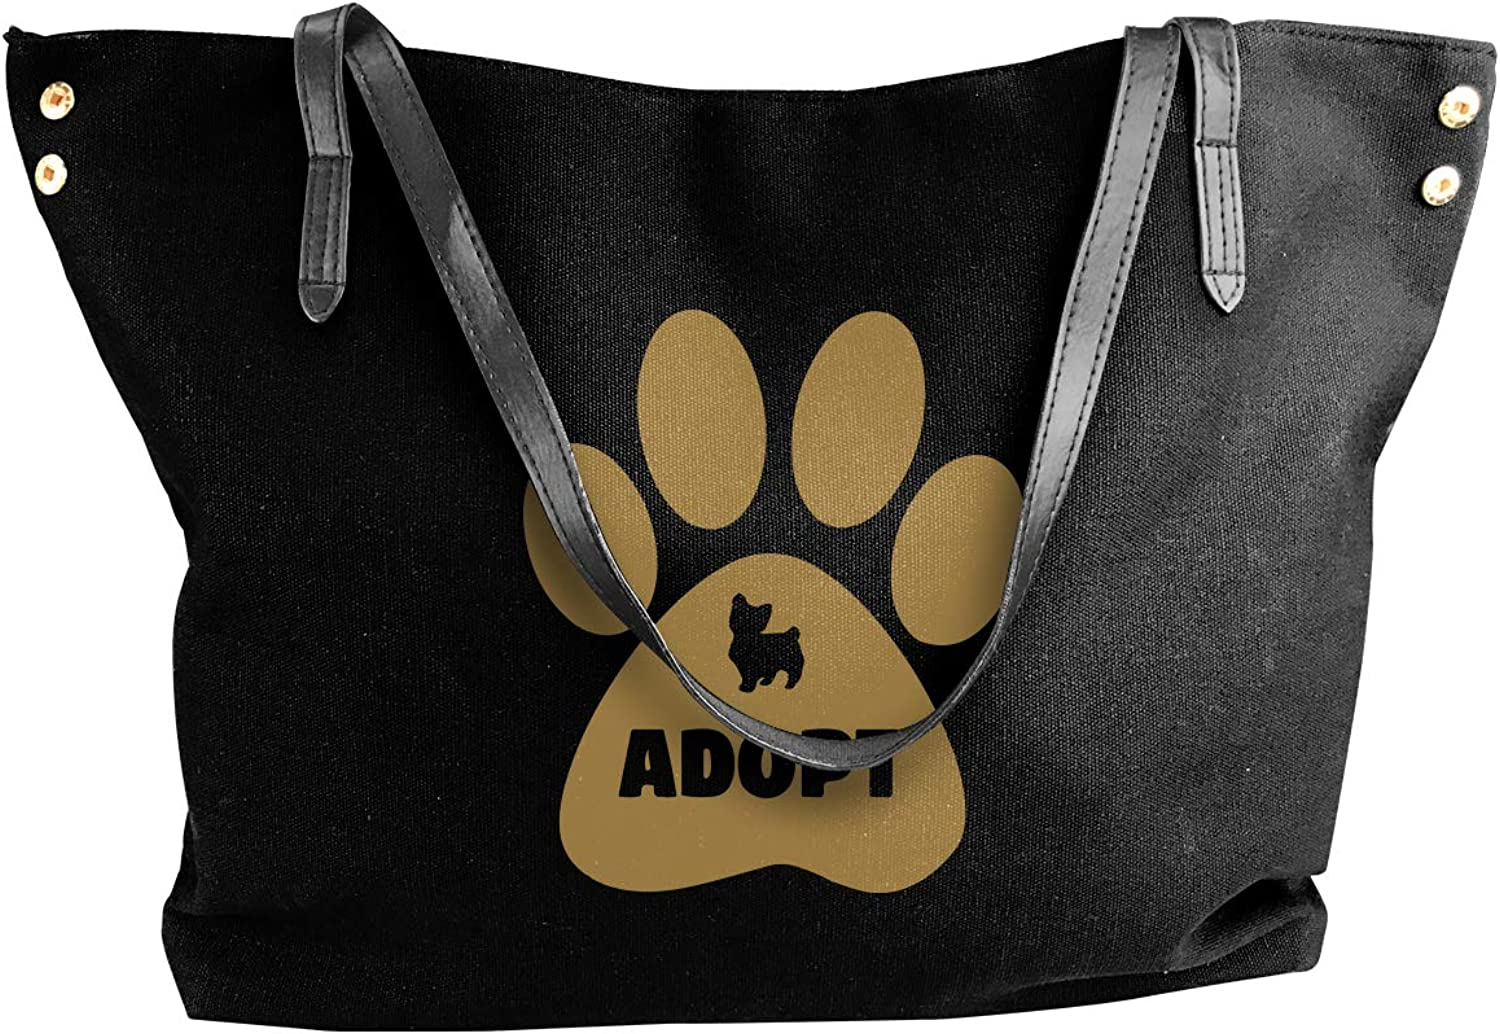 Don't Shop, Adopt Dog. Women'S Casual Canvas Sling Bag For Travel Work Bag